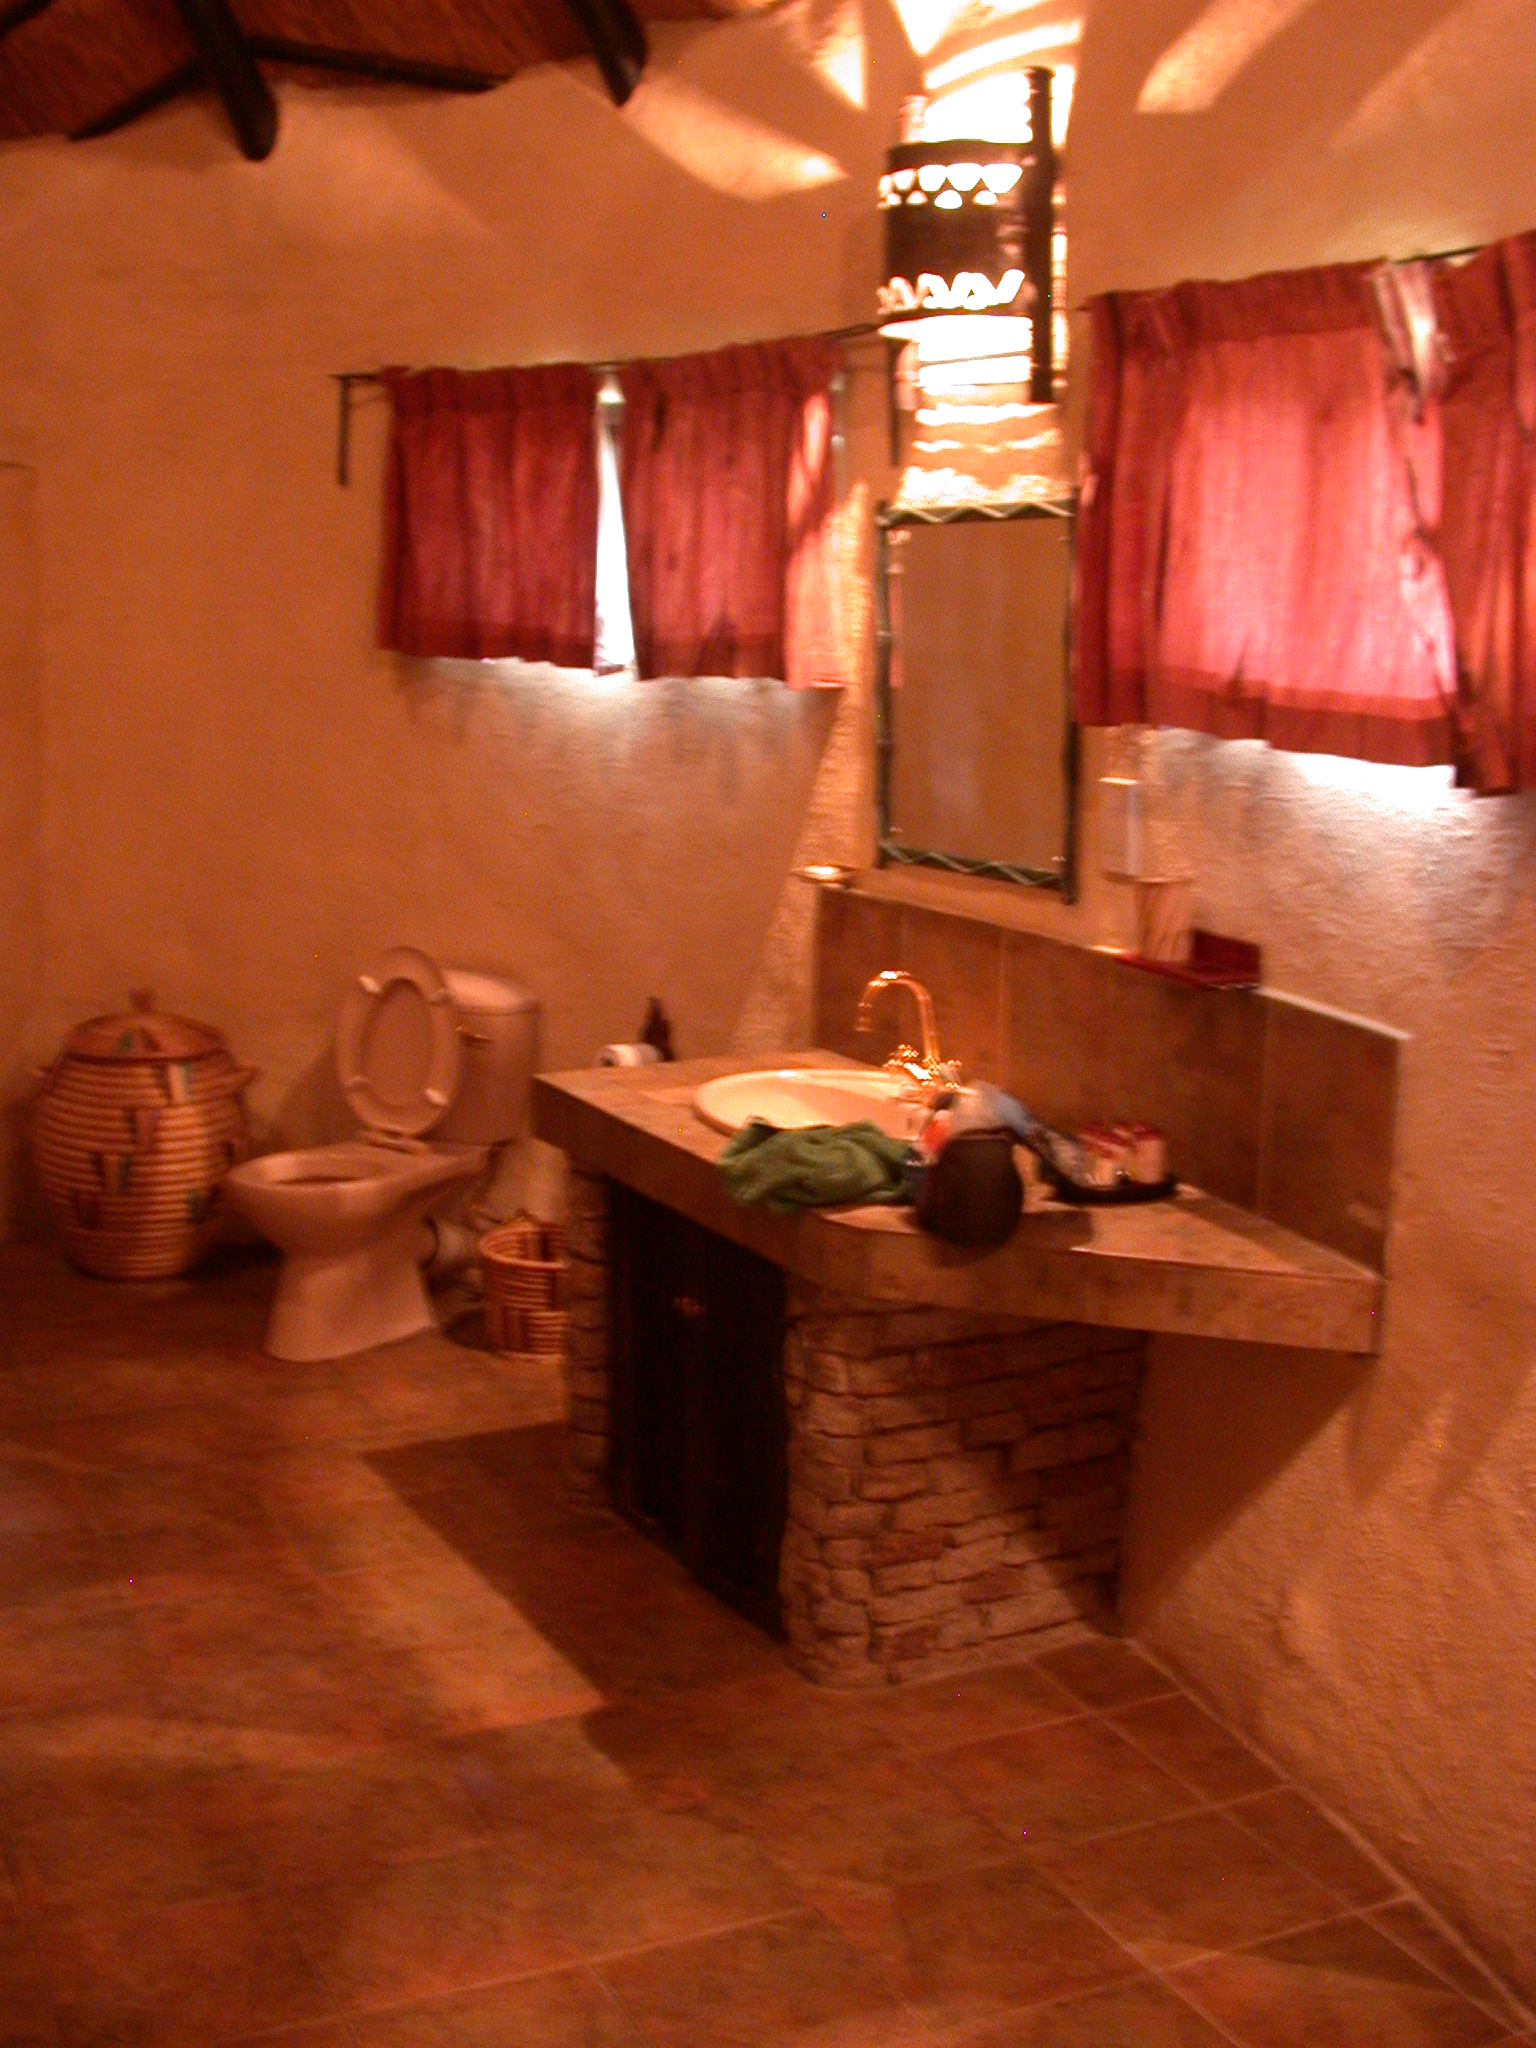 Bathroom of My Suite at the Ancient City Lodge, Great Zimbabwe, Outside Masvingo, Zimbabwe